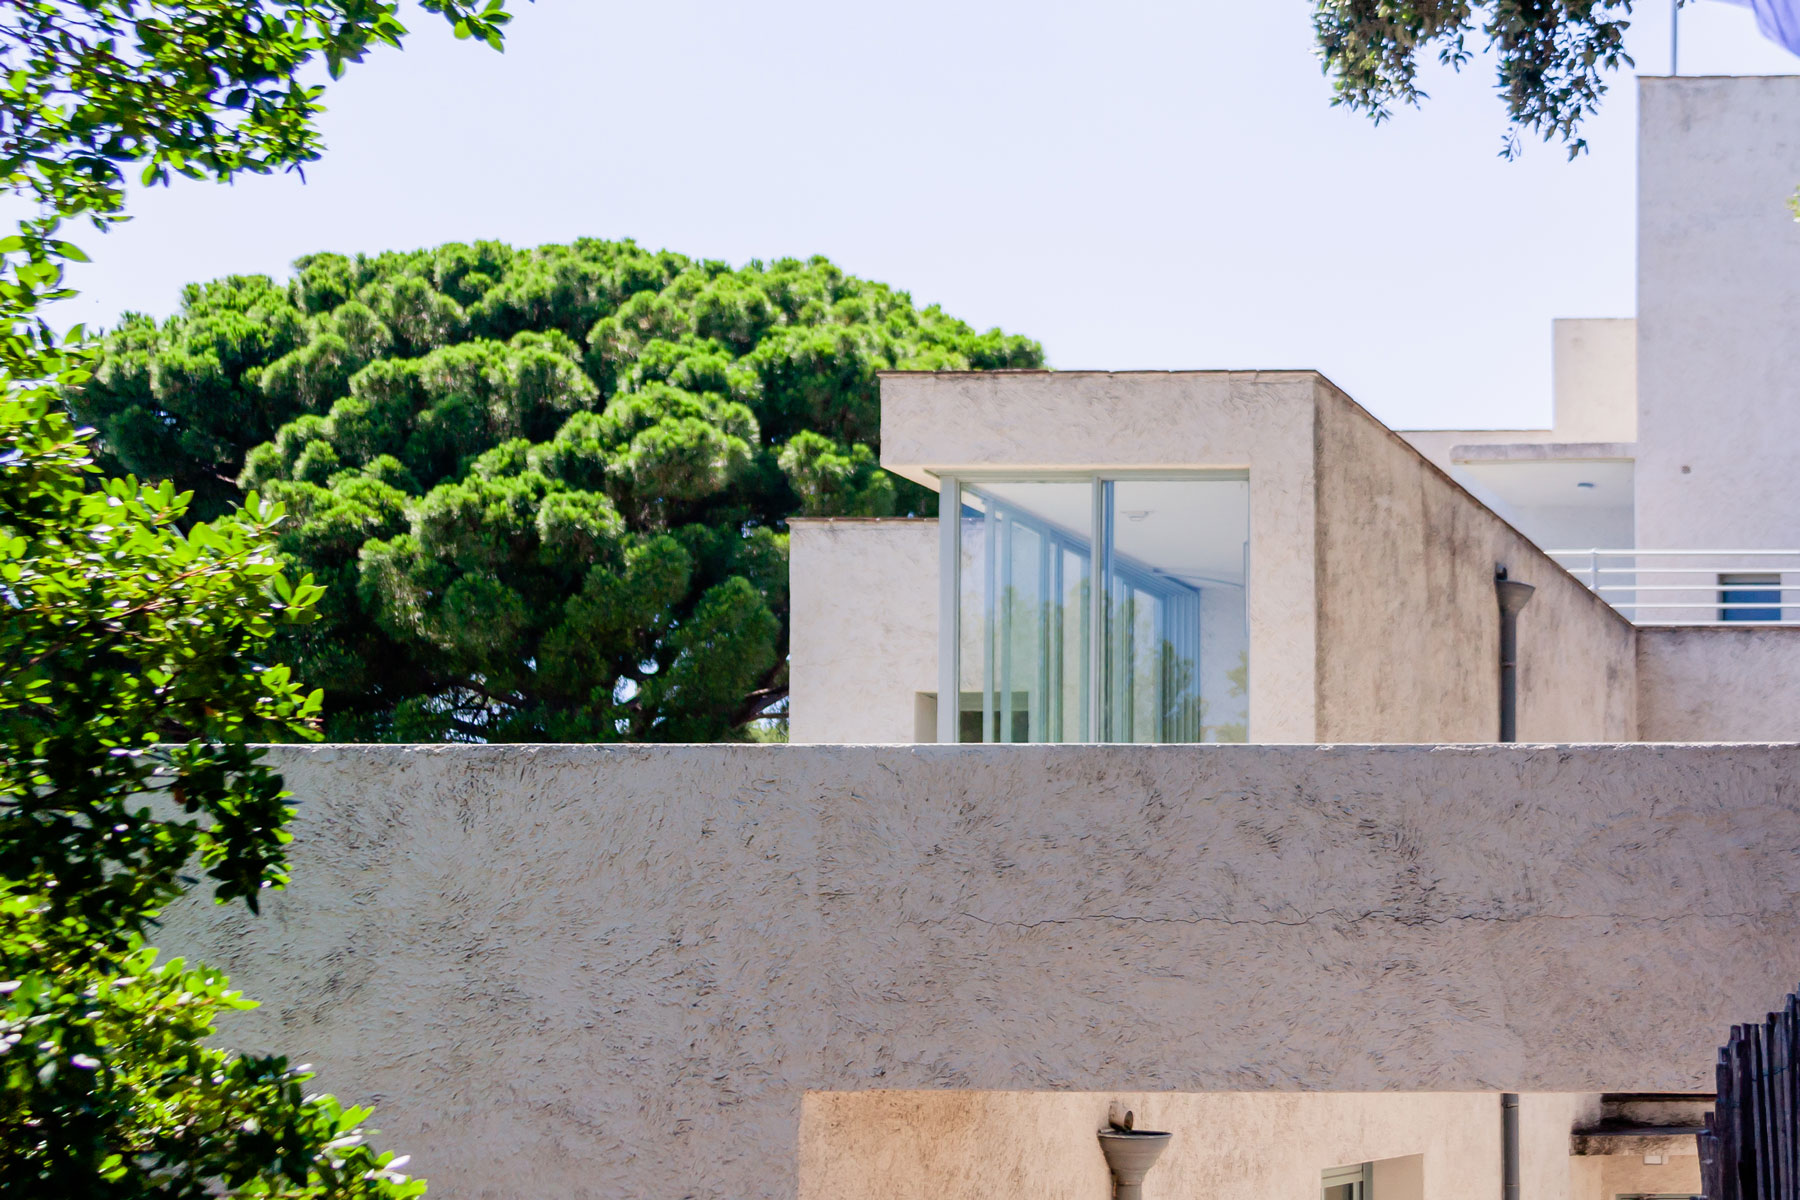 Villa Noailles - 100 Year Modernist Villa And 2019 Trends